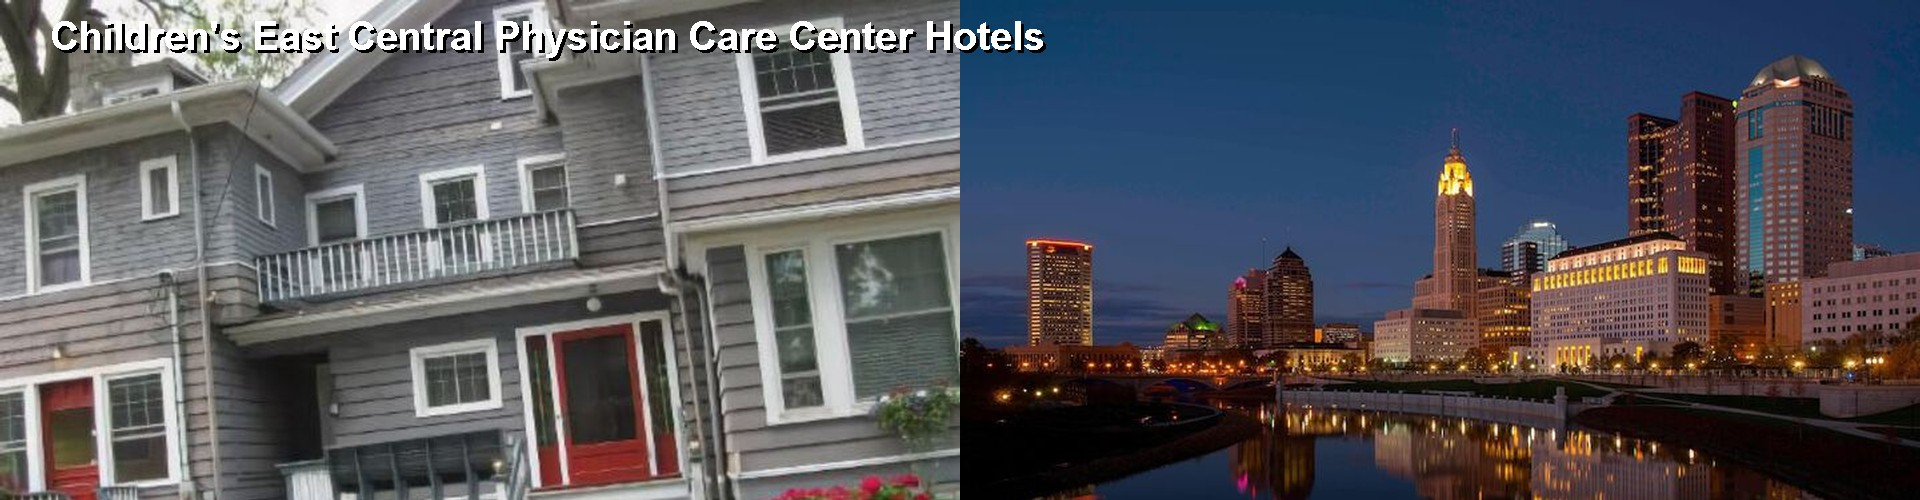 5 Best Hotels near Children's East Central Physician Care Center